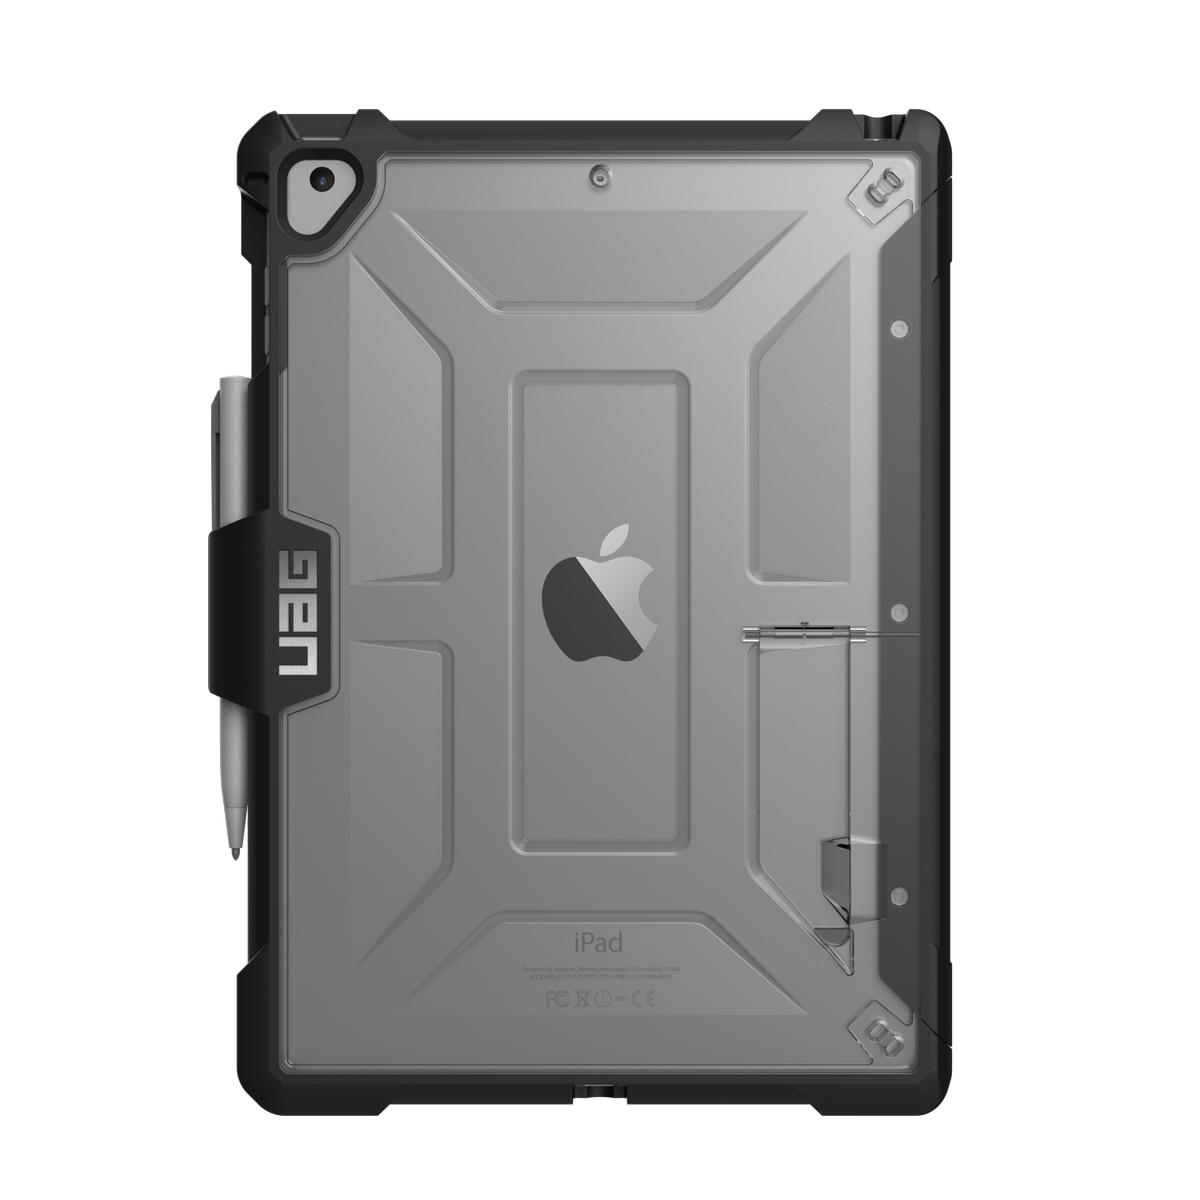 Retail Uag Plasma Ipad 5Th 6Th Gen Case Compatible With The Following Ipad 2018 9 7 Inch 6Th Gen Model Numbers A1893 A1954 Ipad 2017 9 7 Inch 5Th Gen Model Numbers A1822 A1823 Ipad Air Model Number A1474 A1475 Ipad Pro 9 7 Inch Model